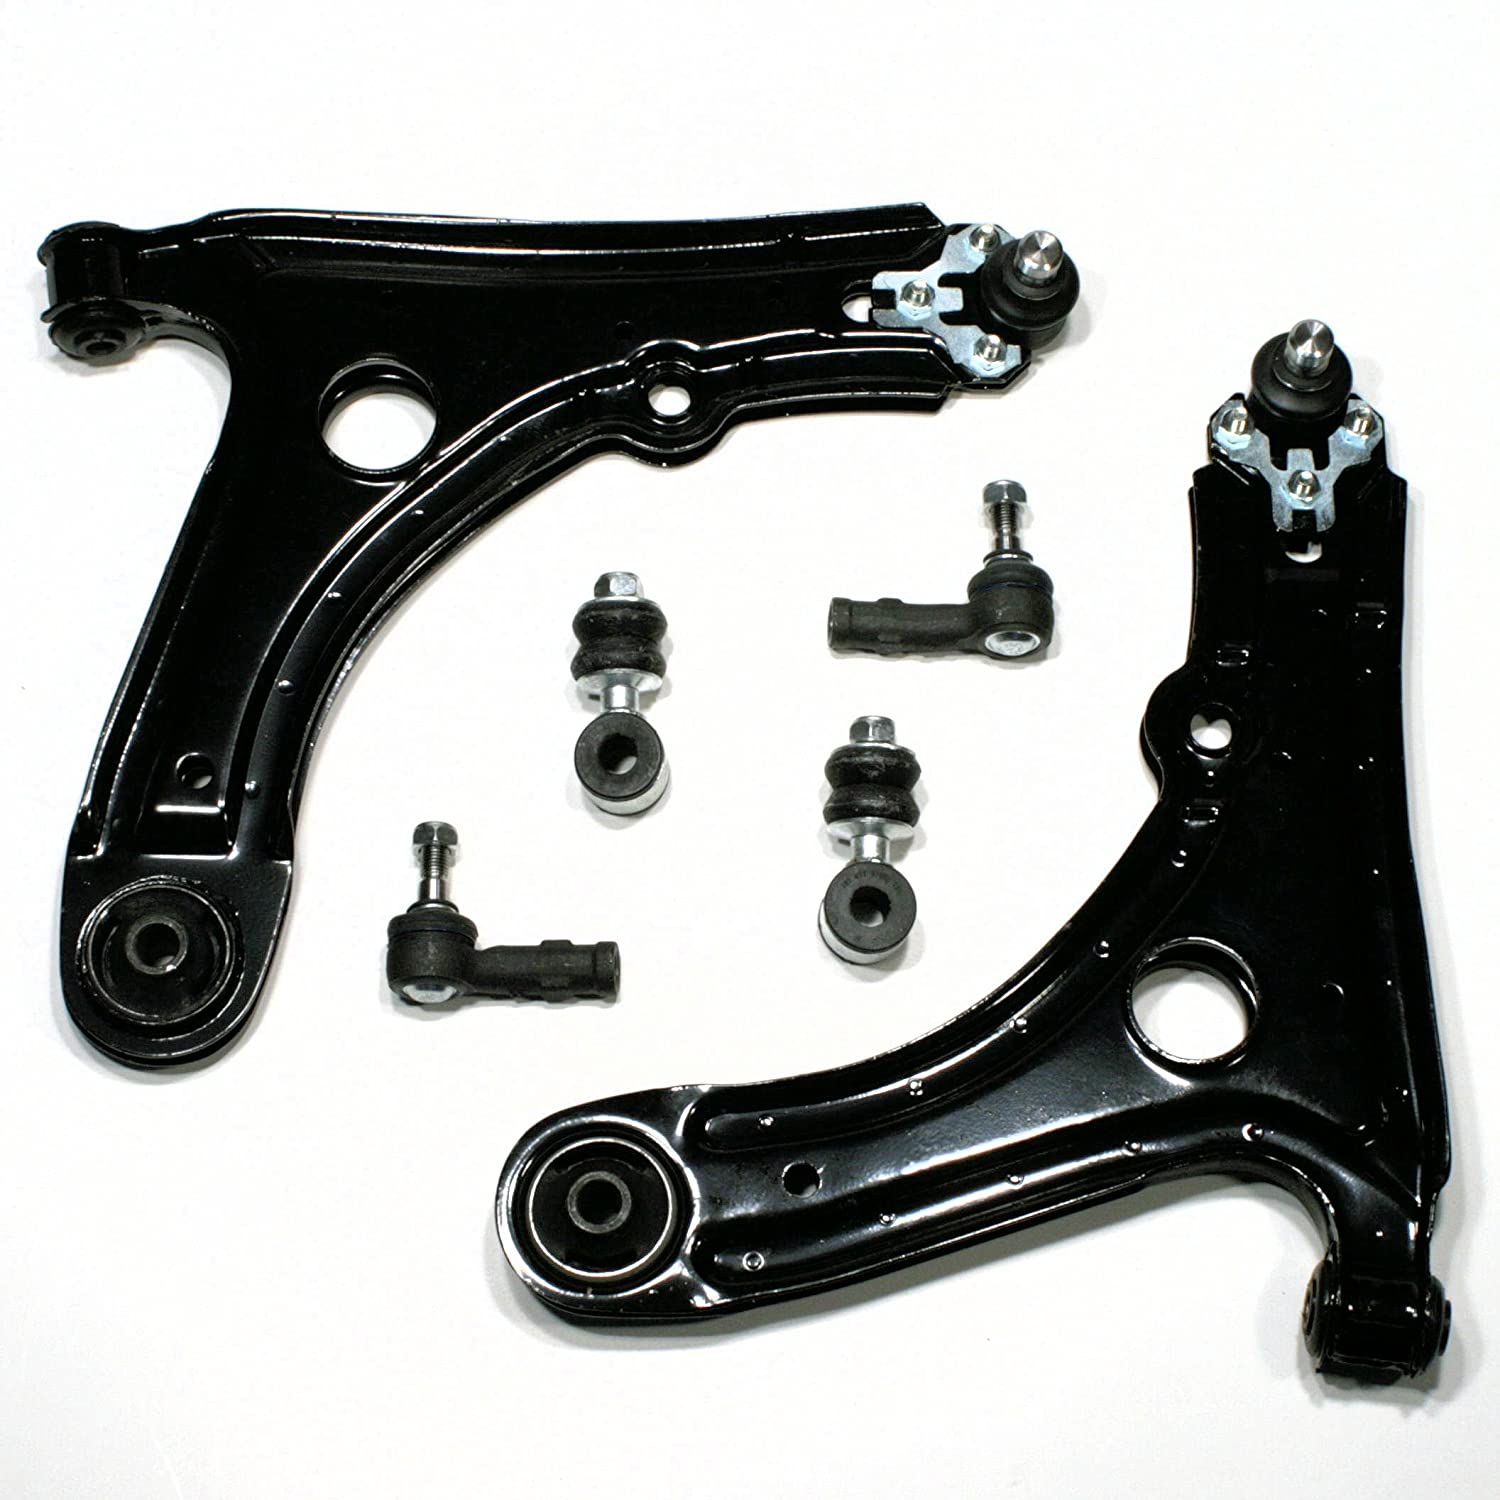 2 x Front Suspension Arms with Ball Joints + 2x Stabis + 2 x Tie Rod